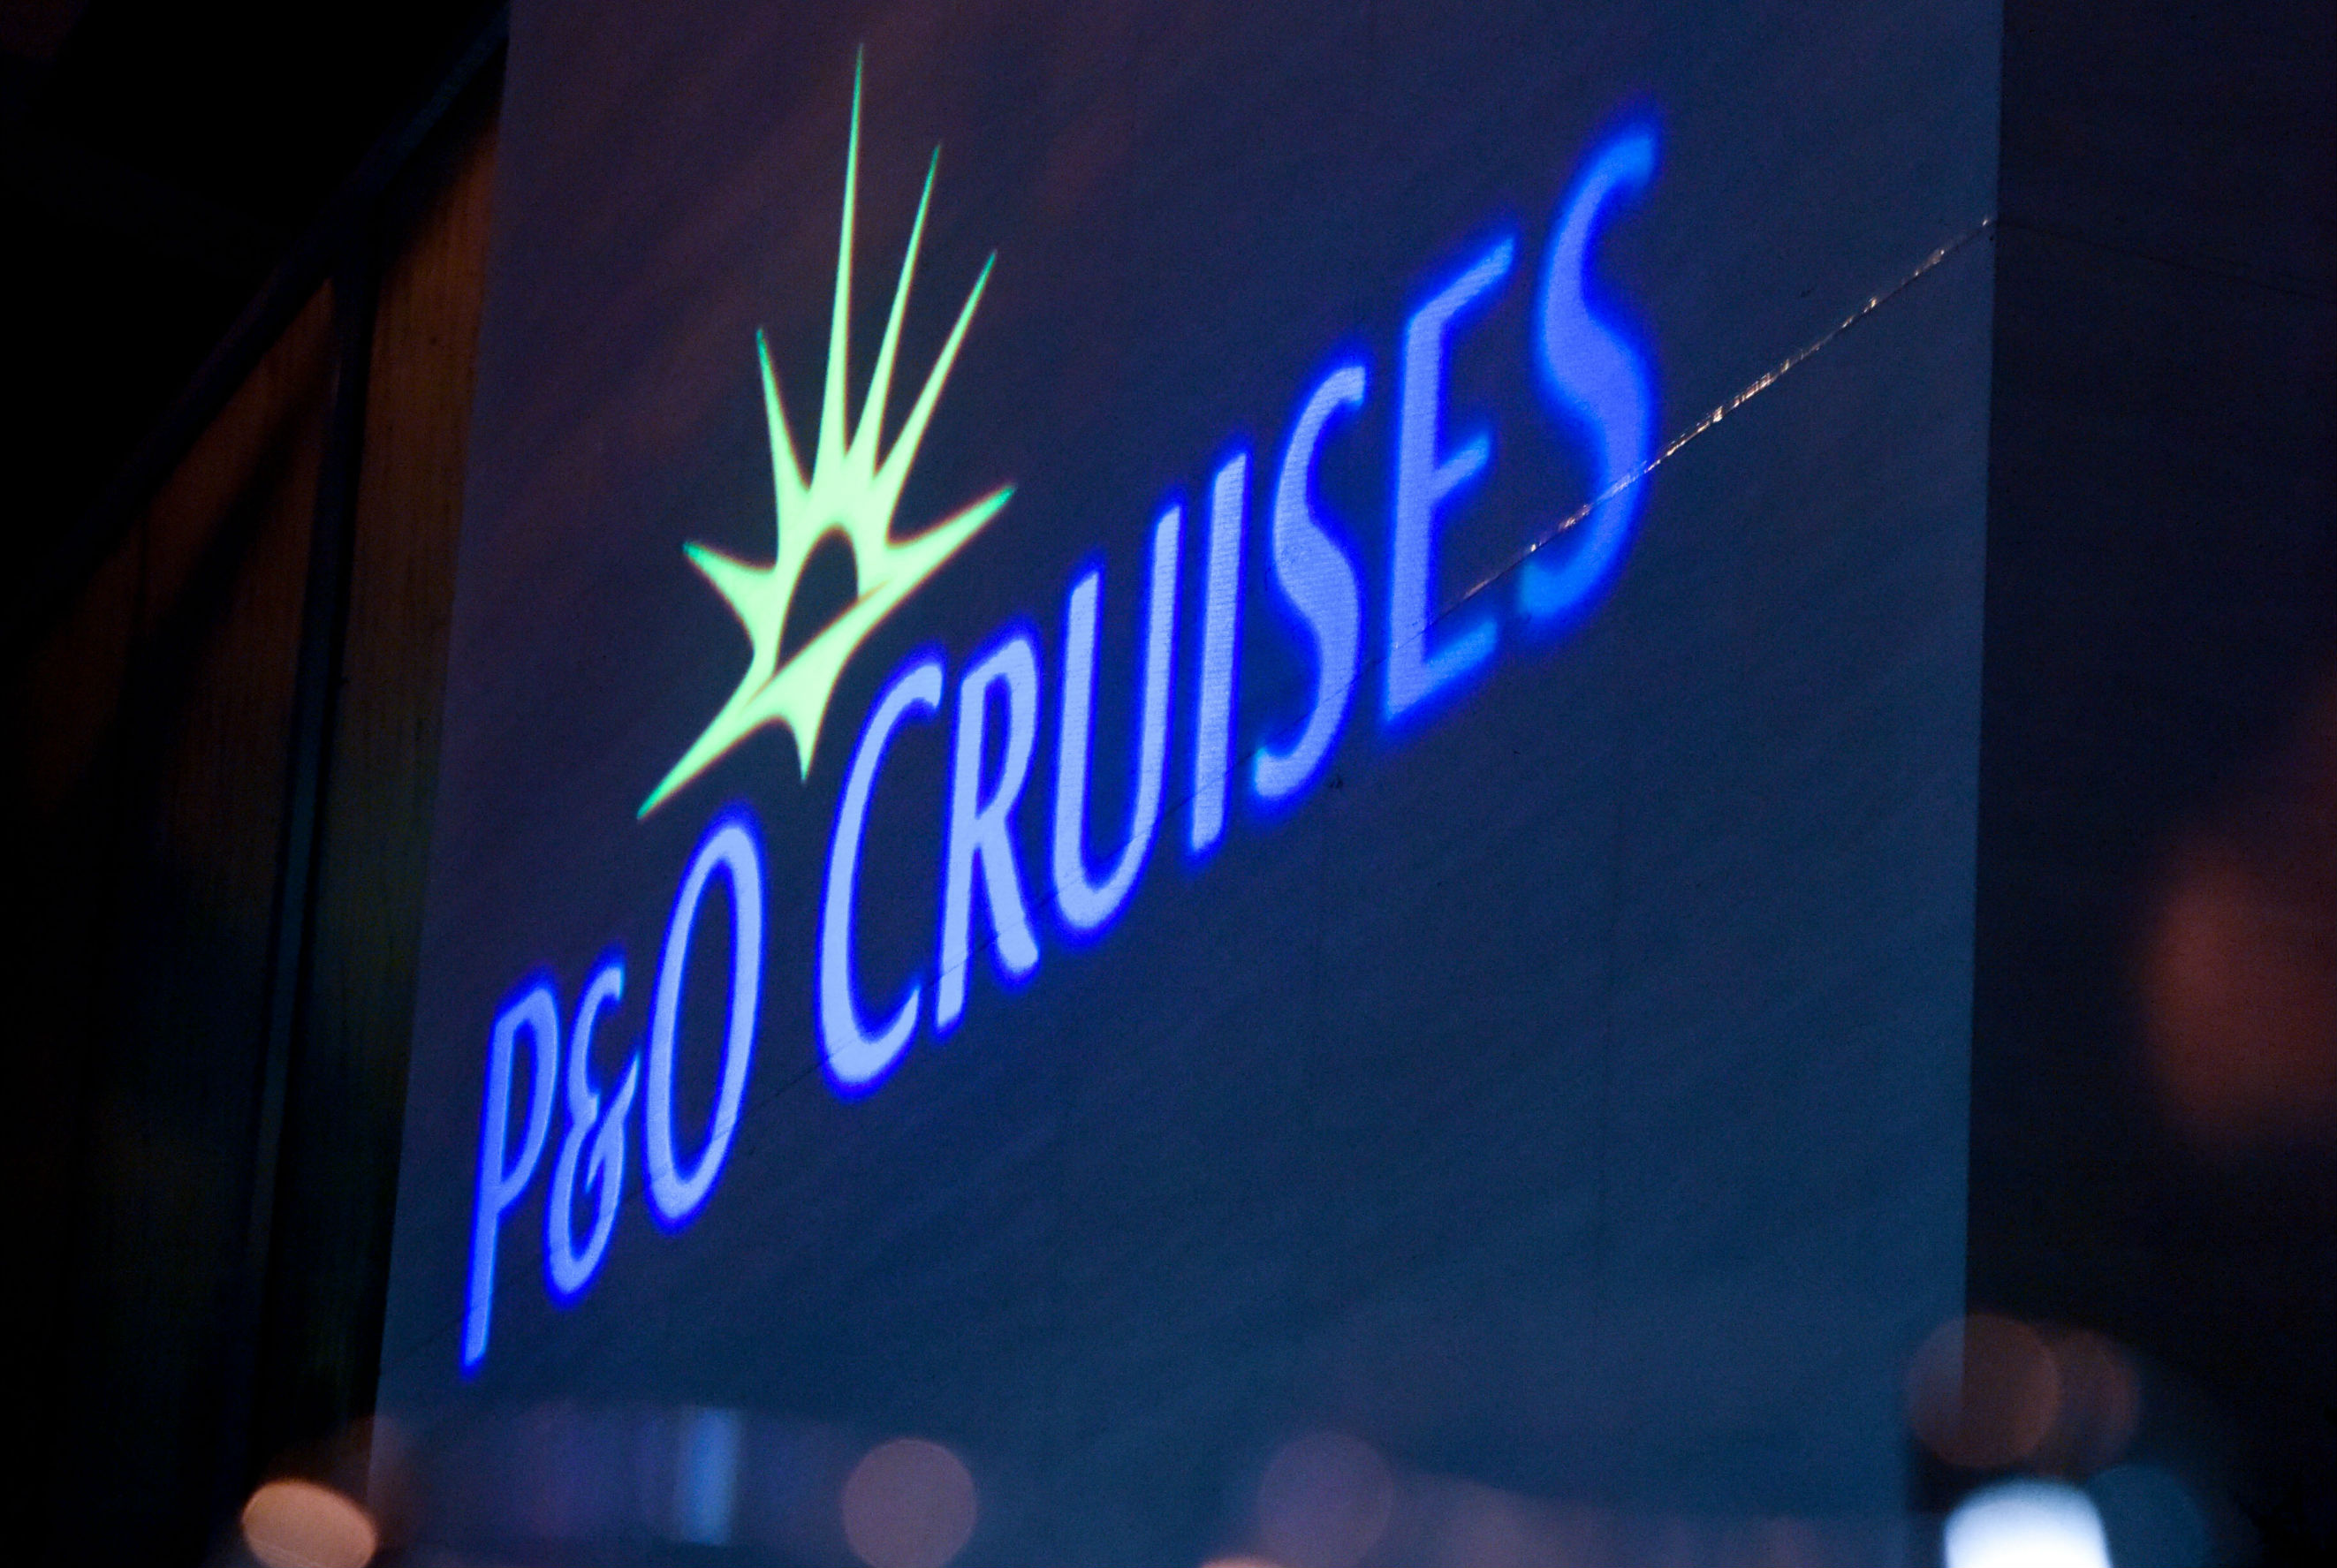 P&O Cruises reveals details of 'most ambitious ship yet'